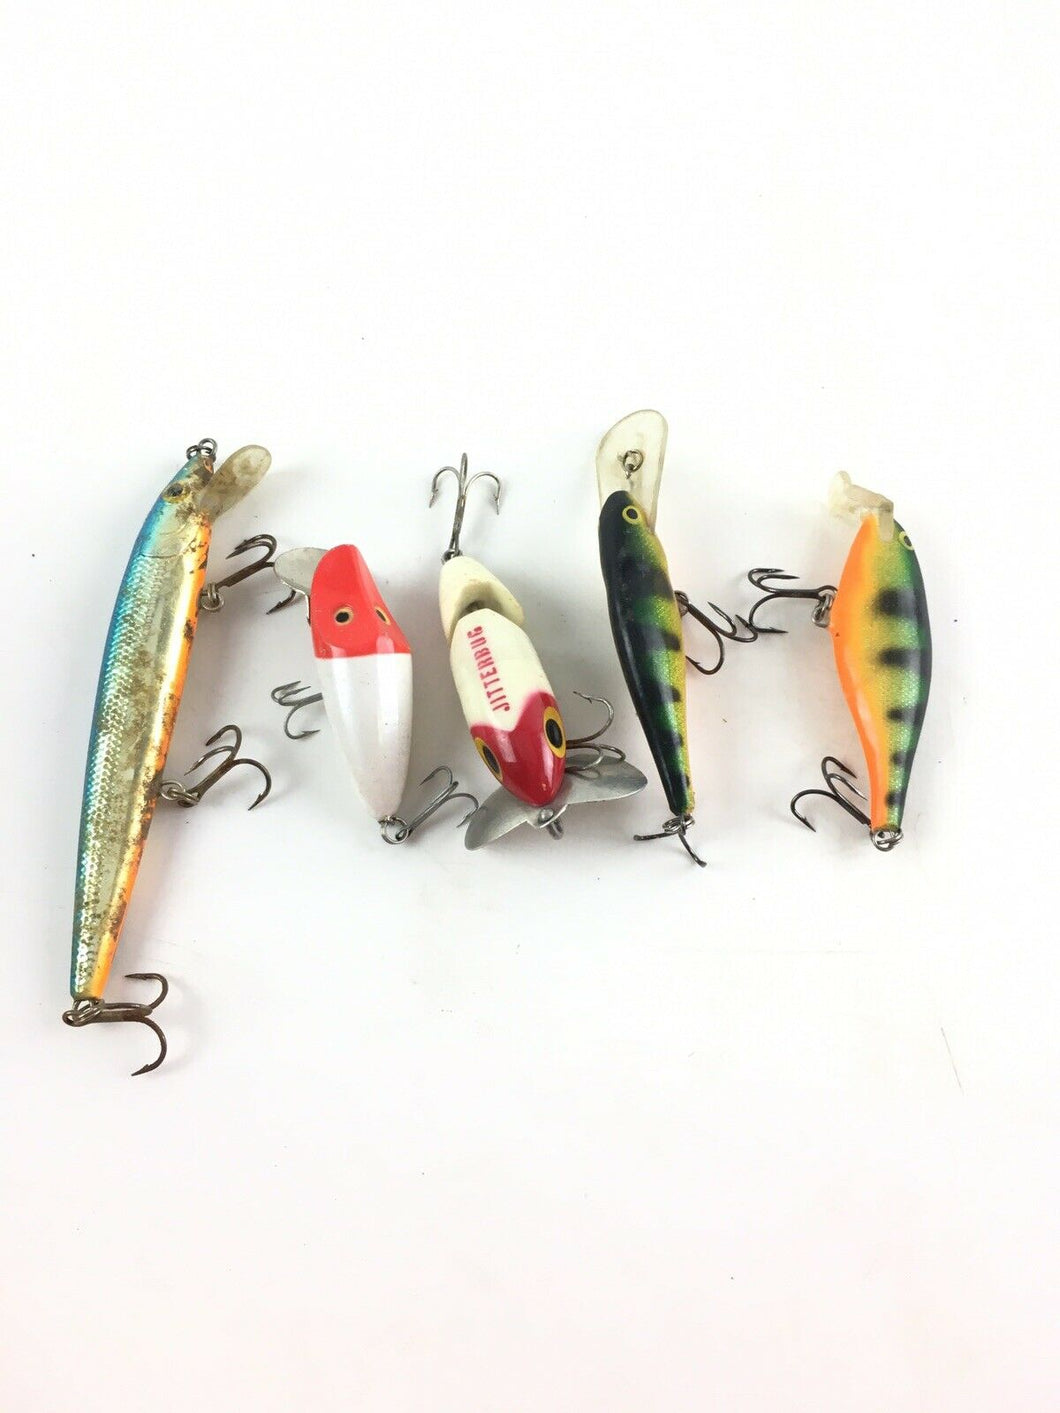 Vintage Fishing Lures Lot Of 5 5393